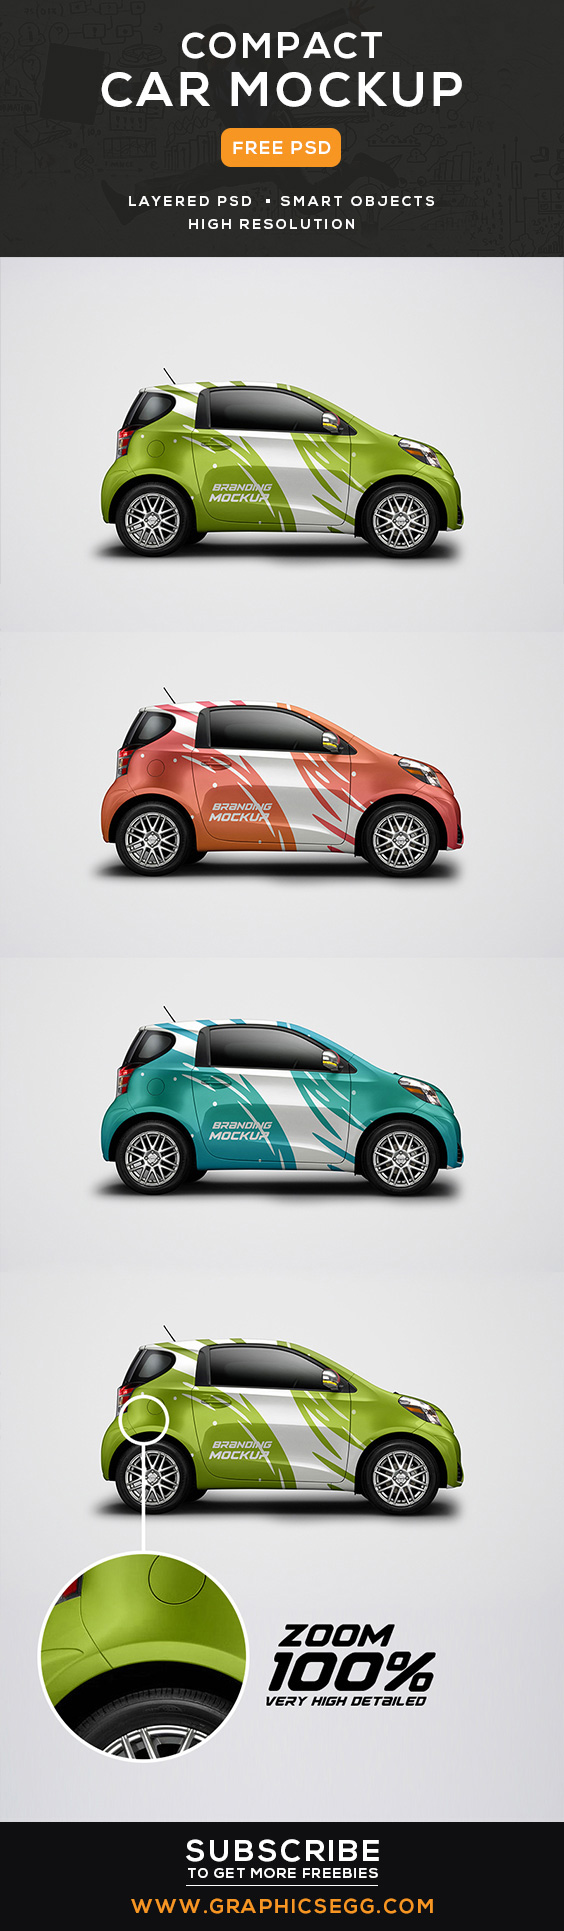 Car sticker design psd - Today S Freebie Is Car Mockup Free Psd This Mock Up Allows You To Make Awesome Presentations Of Your Works It Can Be Mobile App Website Prints And More